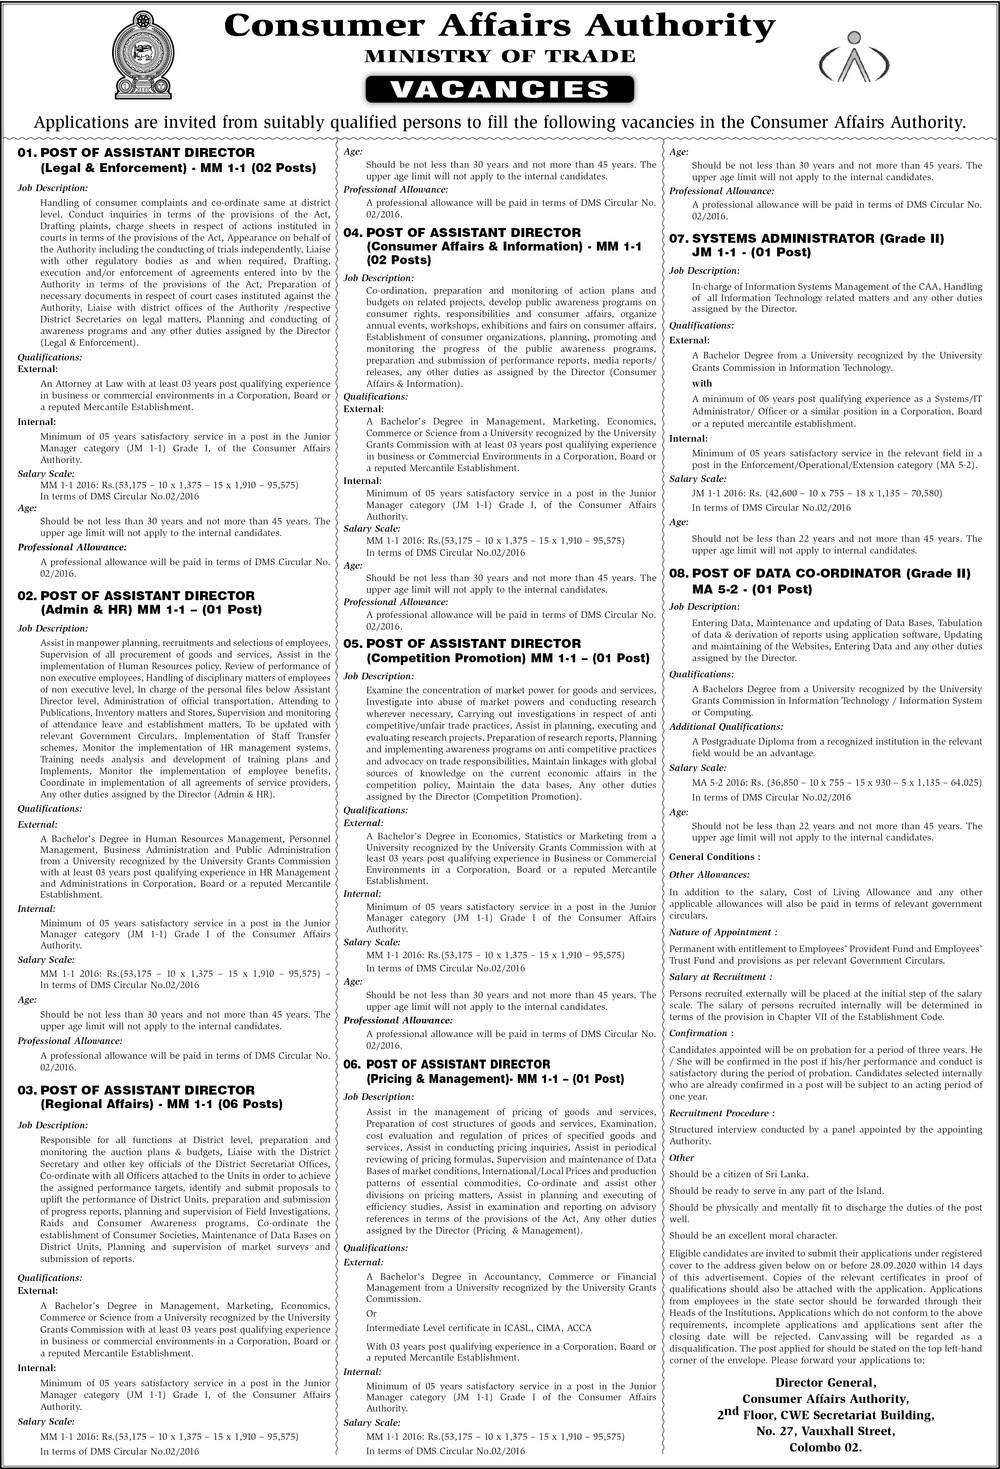 System Administration, Data Coordinator, Assistant Director - Consumer Affairs Authority